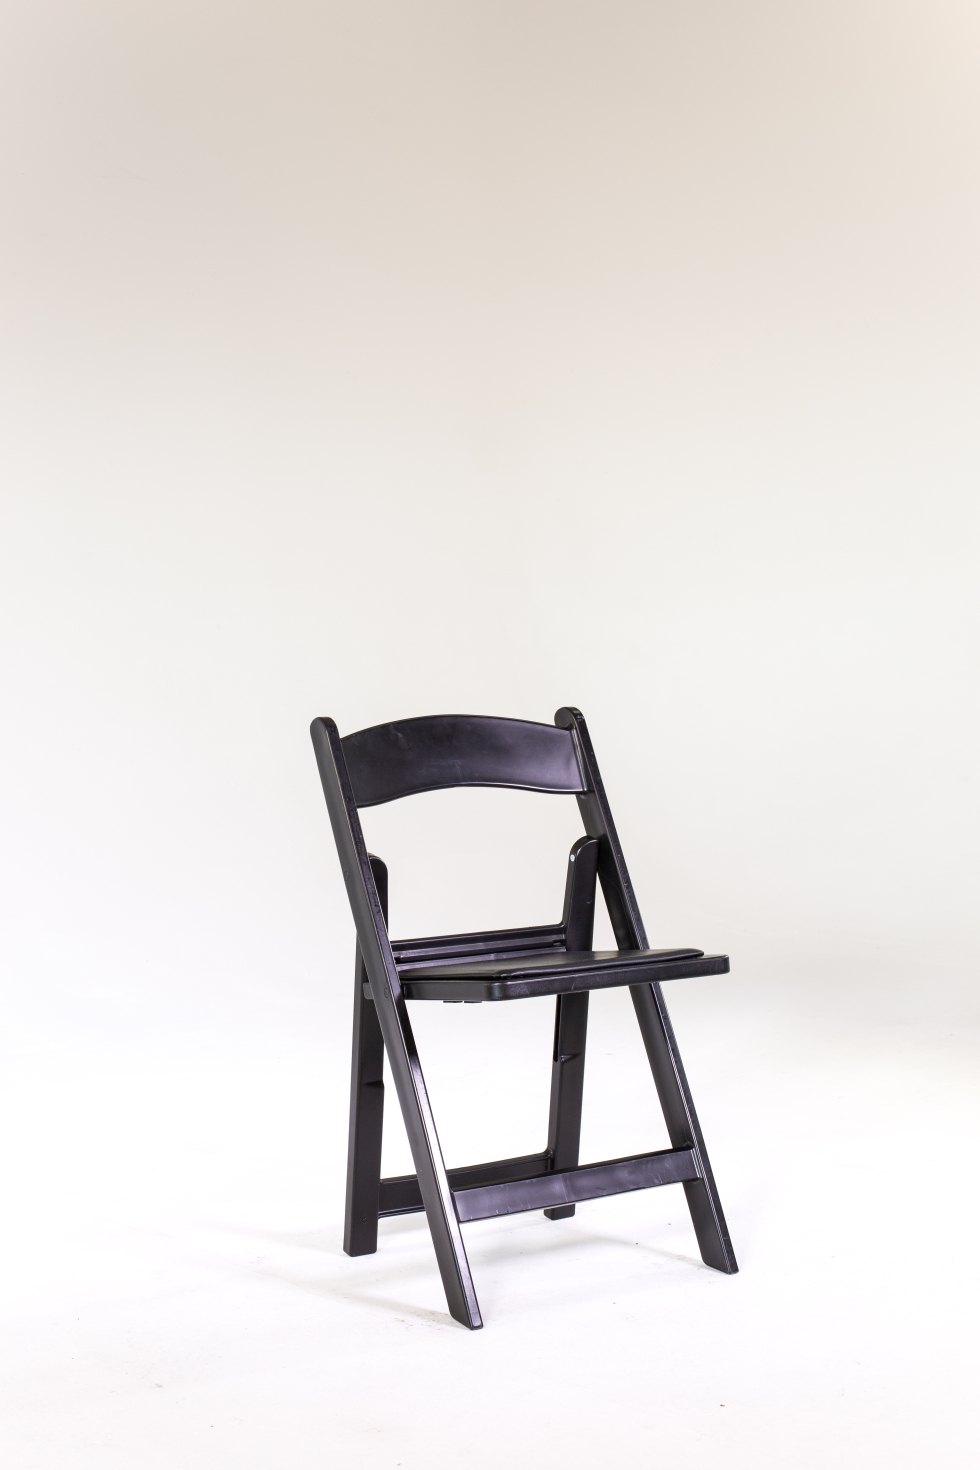 Signature Party Rentals Black Resin Folding Chair Rentals